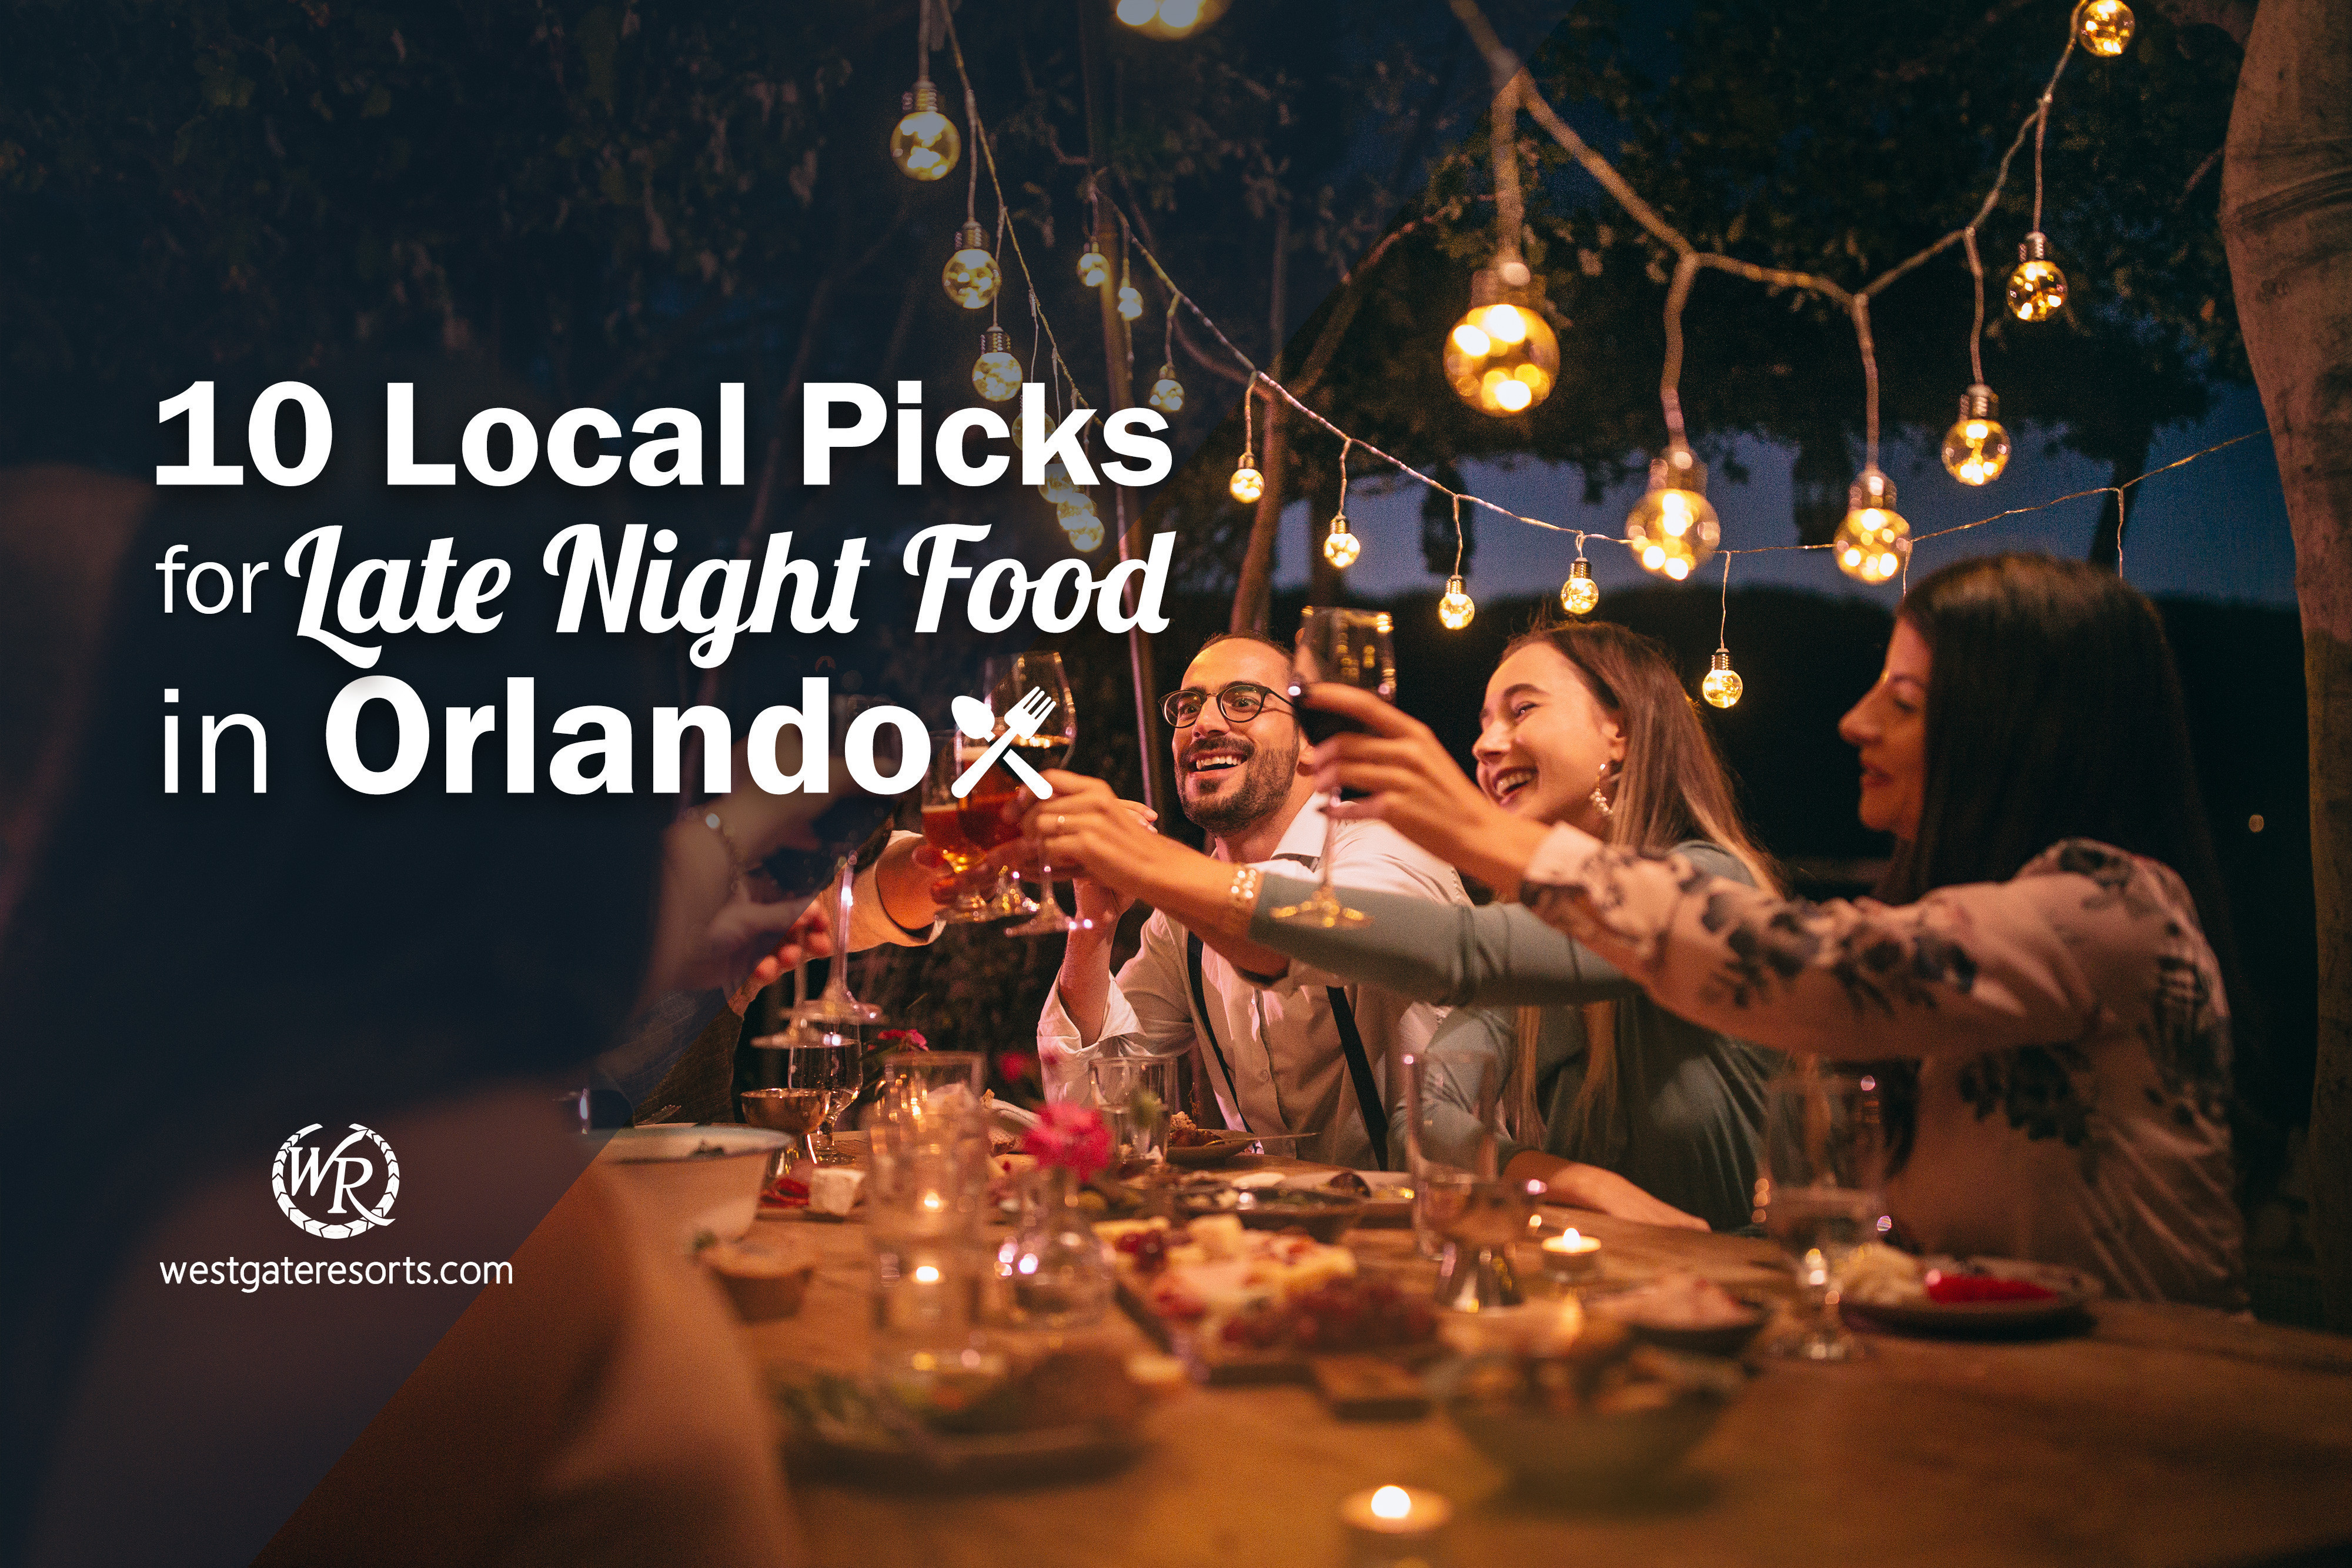 10 Local Picks for Late Night Food in Orlando